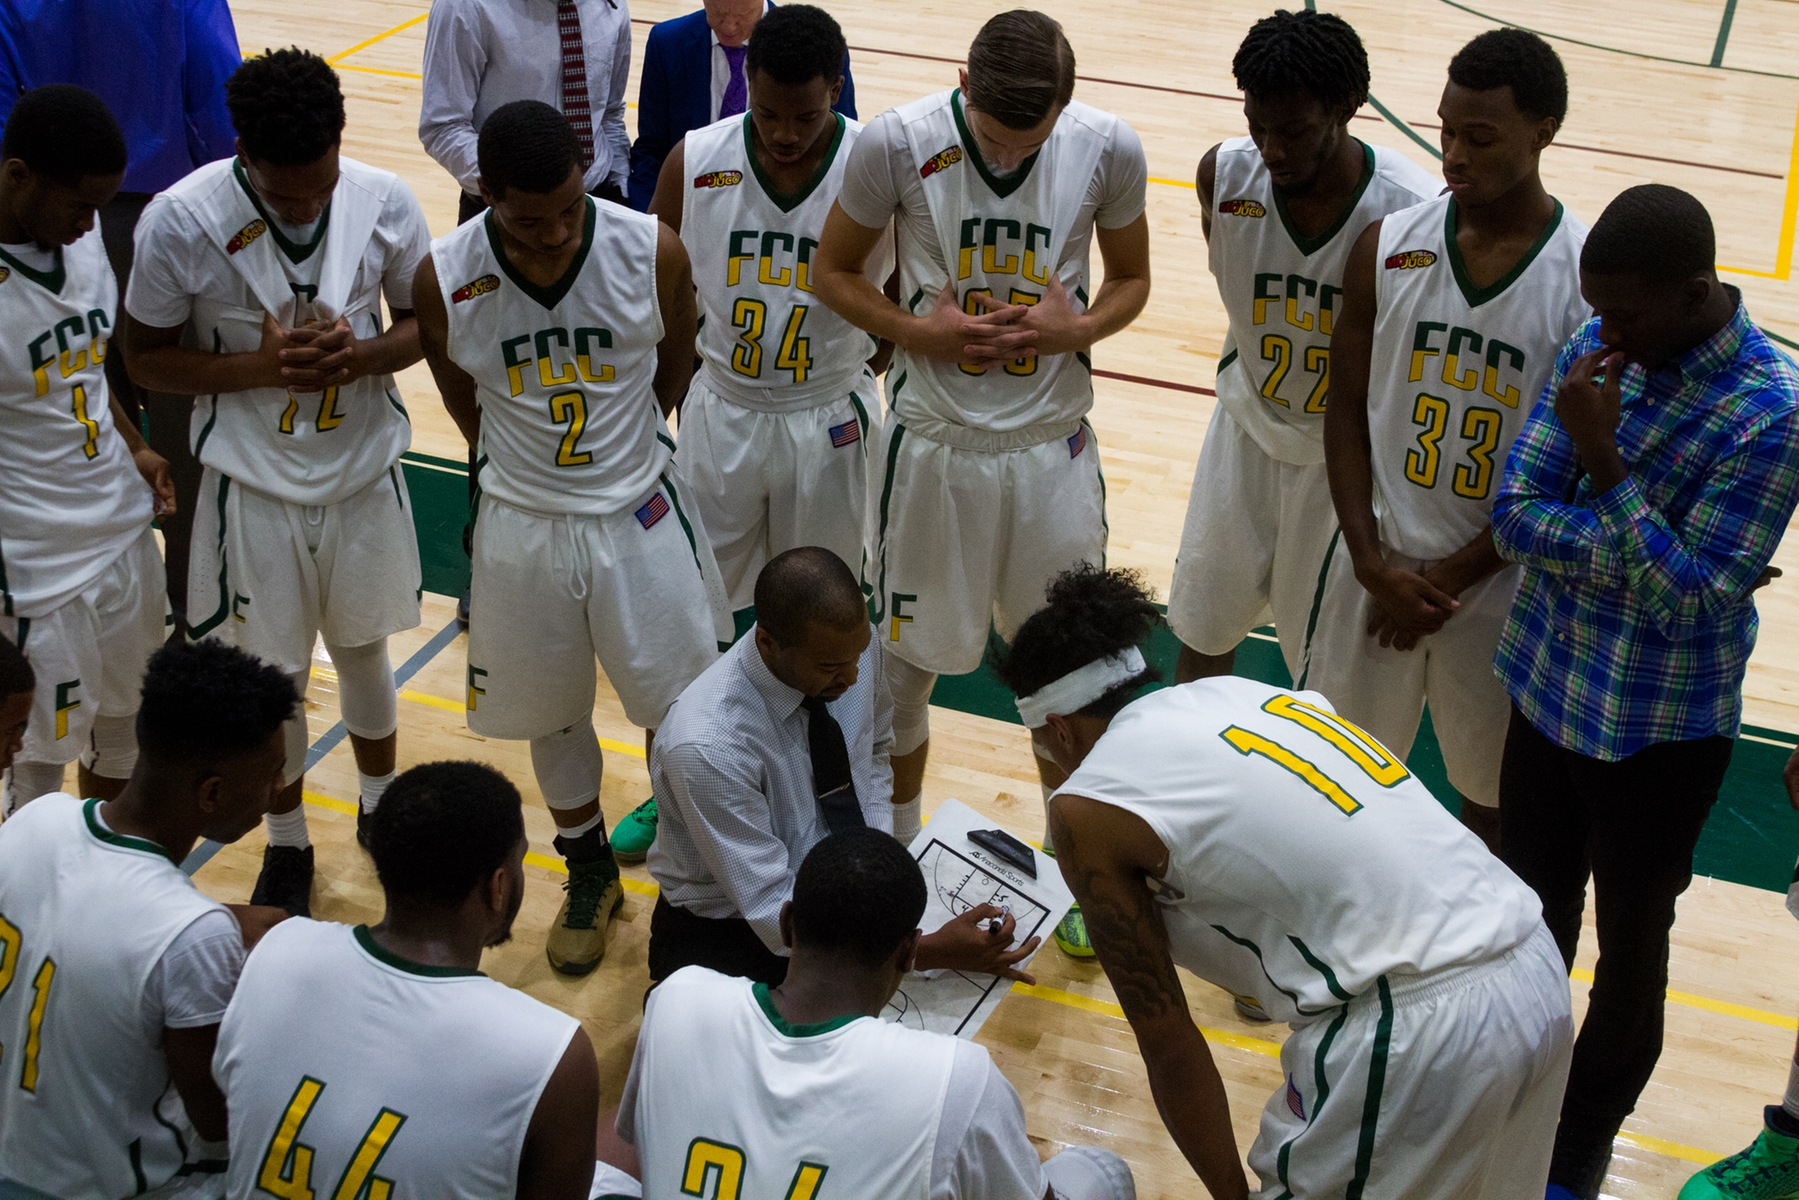 Men's Basketball Shoots Lights Out To Earn 63-45 Victory Over Mercer County CC